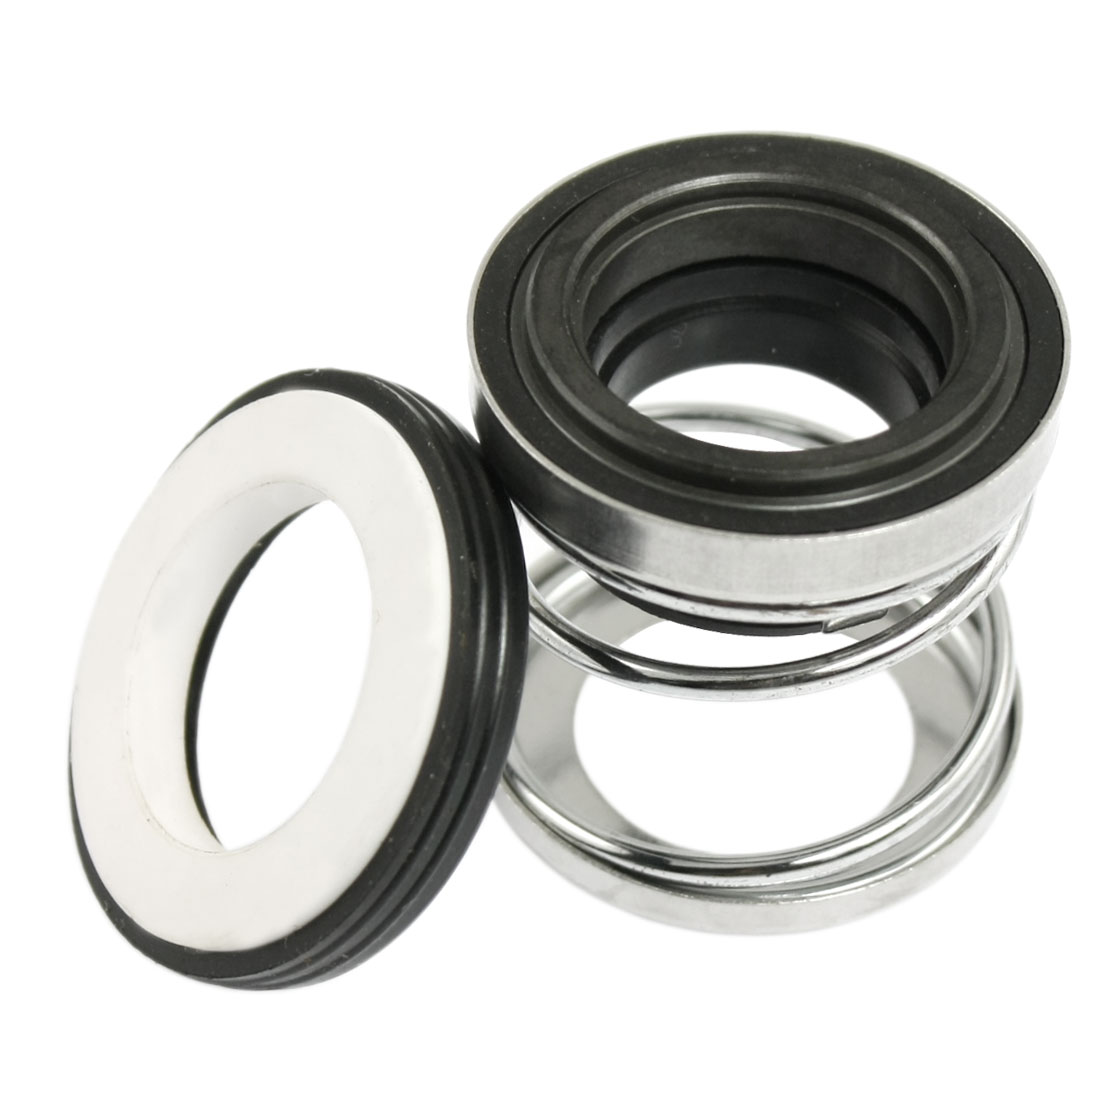 2 Pcs 108-19 19mm Dia. Rubber Bellow Mechanical Seal for Pump Shaft